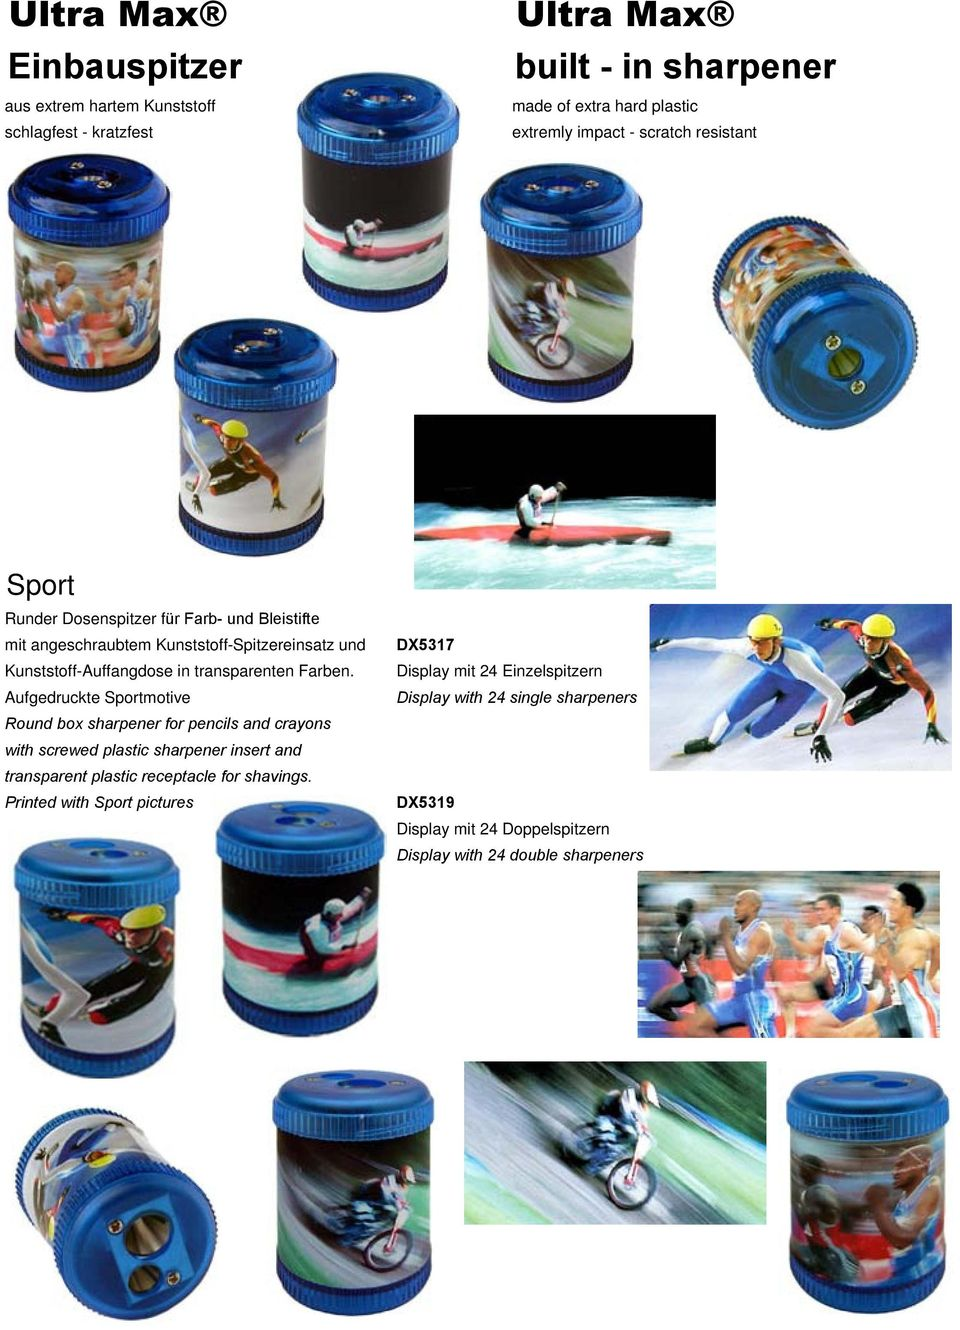 Aufgedruckte Sportmotive Round box sharpener for pencils and crayons with screwed plastic sharpener insert and transparent plastic receptacle for shavings.